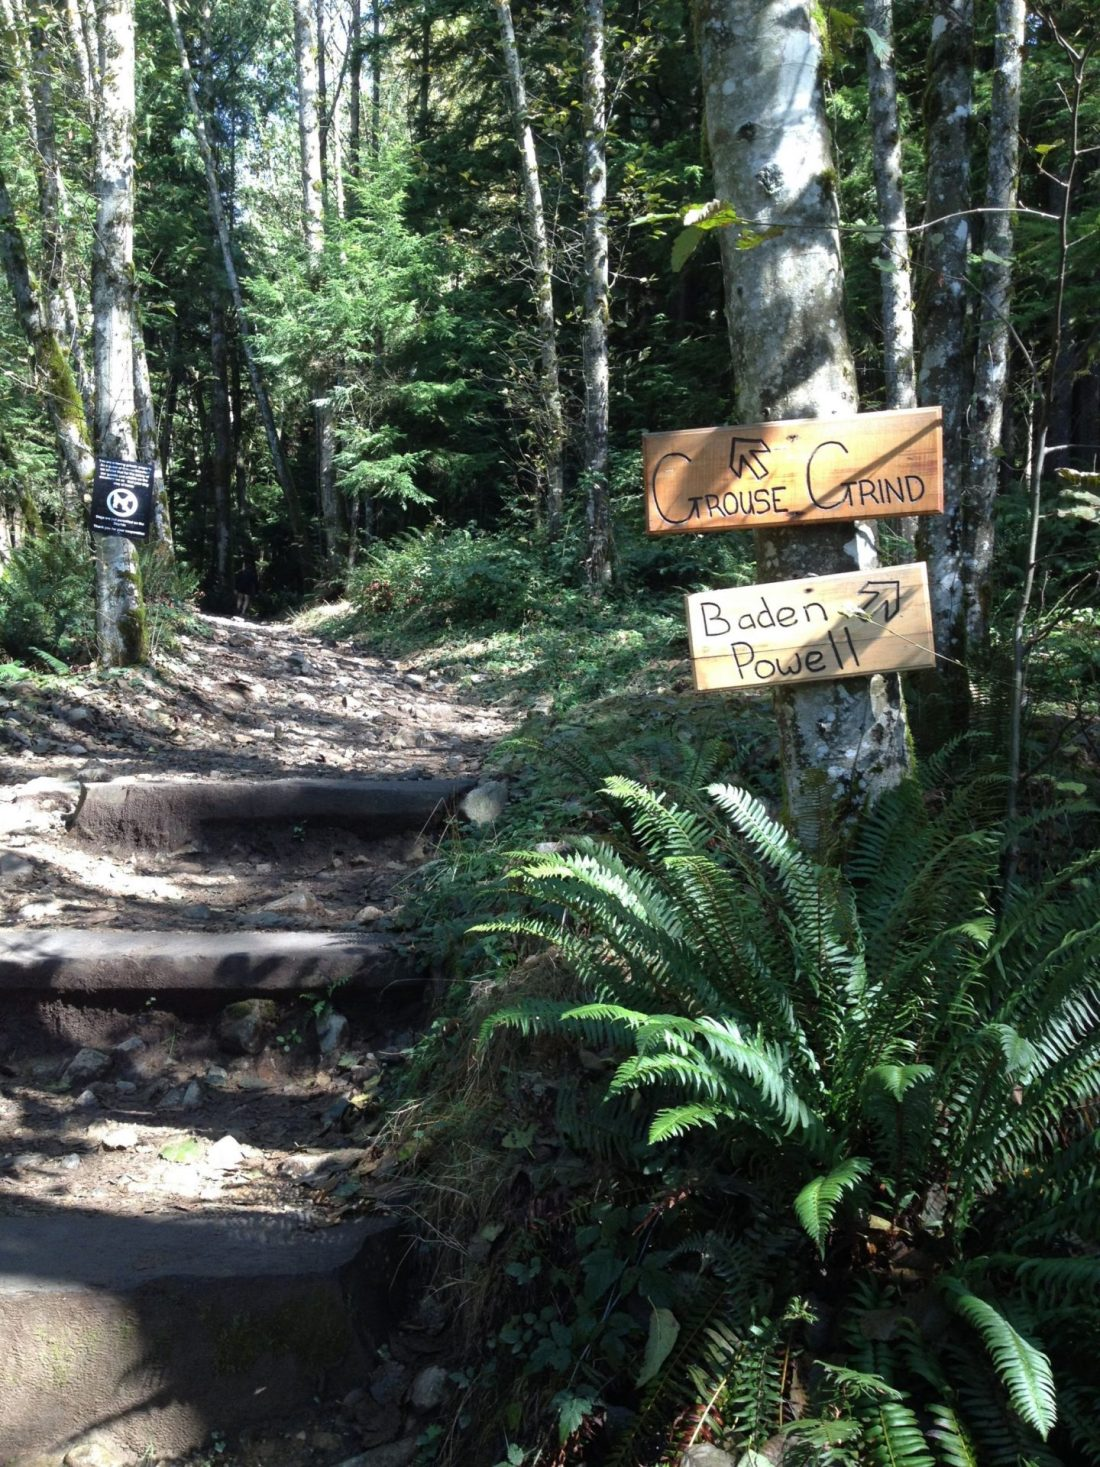 Starting the Grouse Grind, Vancouver